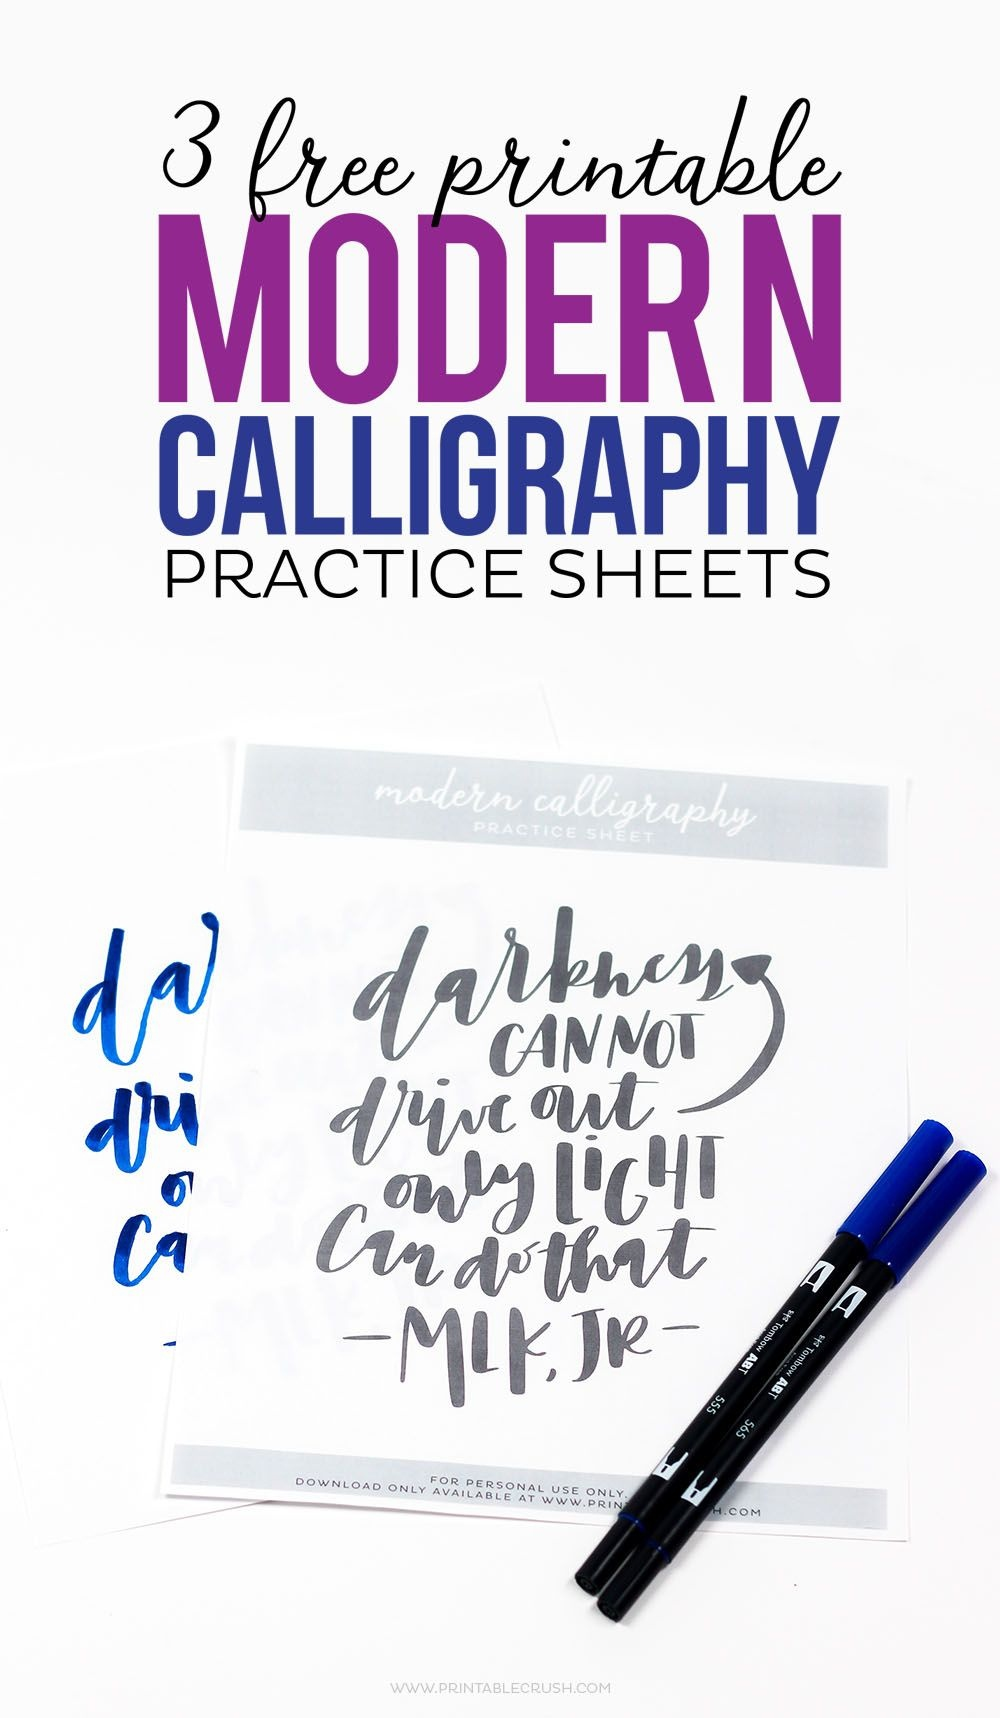 3 Free Printable Modern Calligraphy Practice Sheets (Printable Crush - Modern Calligraphy Practice Sheets Printable Free